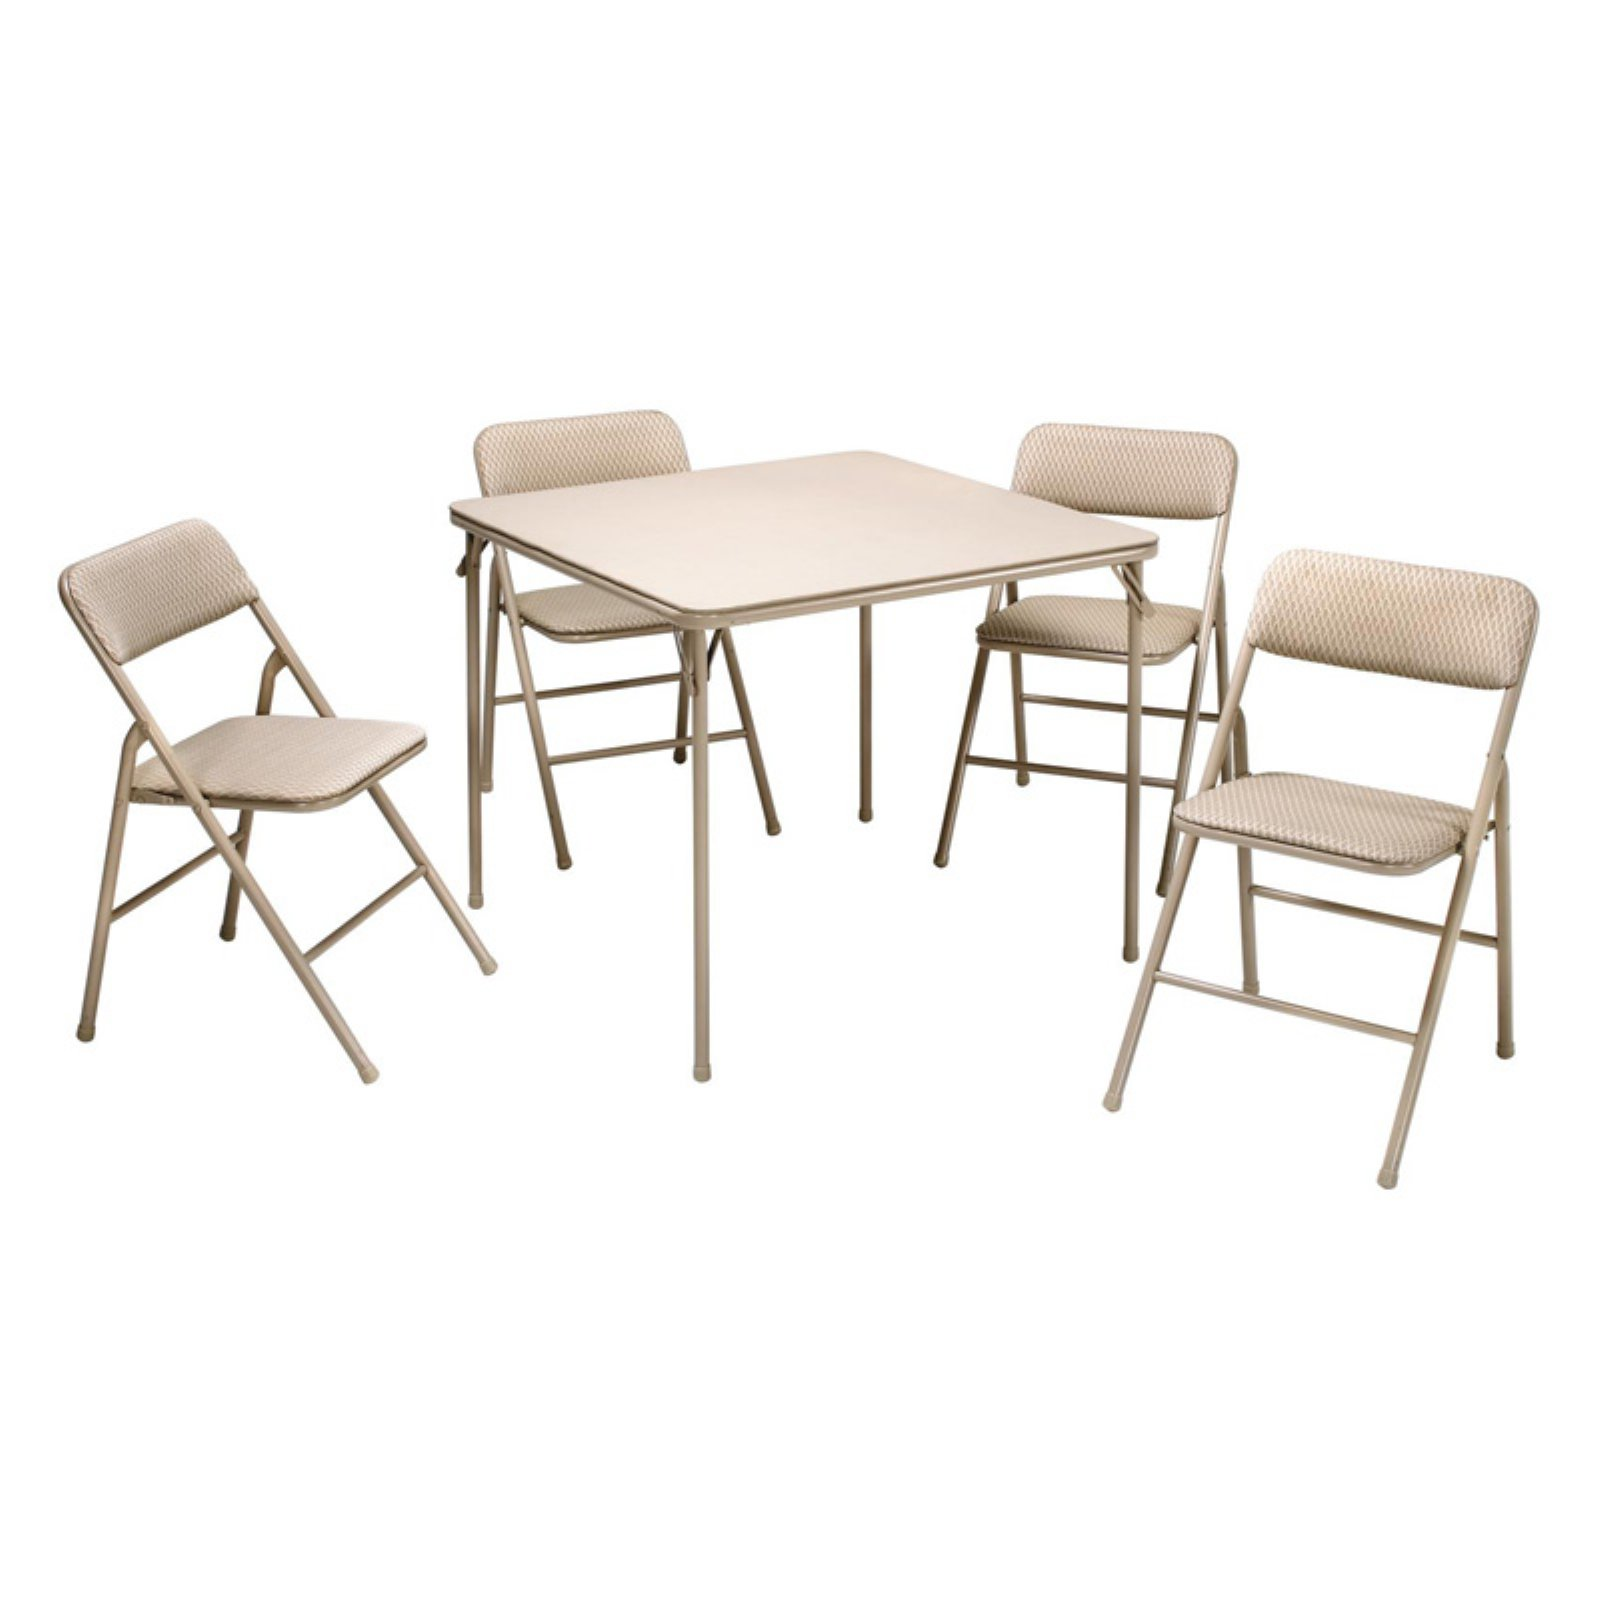 Cosco 34 in. Square Table and Chair Set - Wheat - 5 Pack